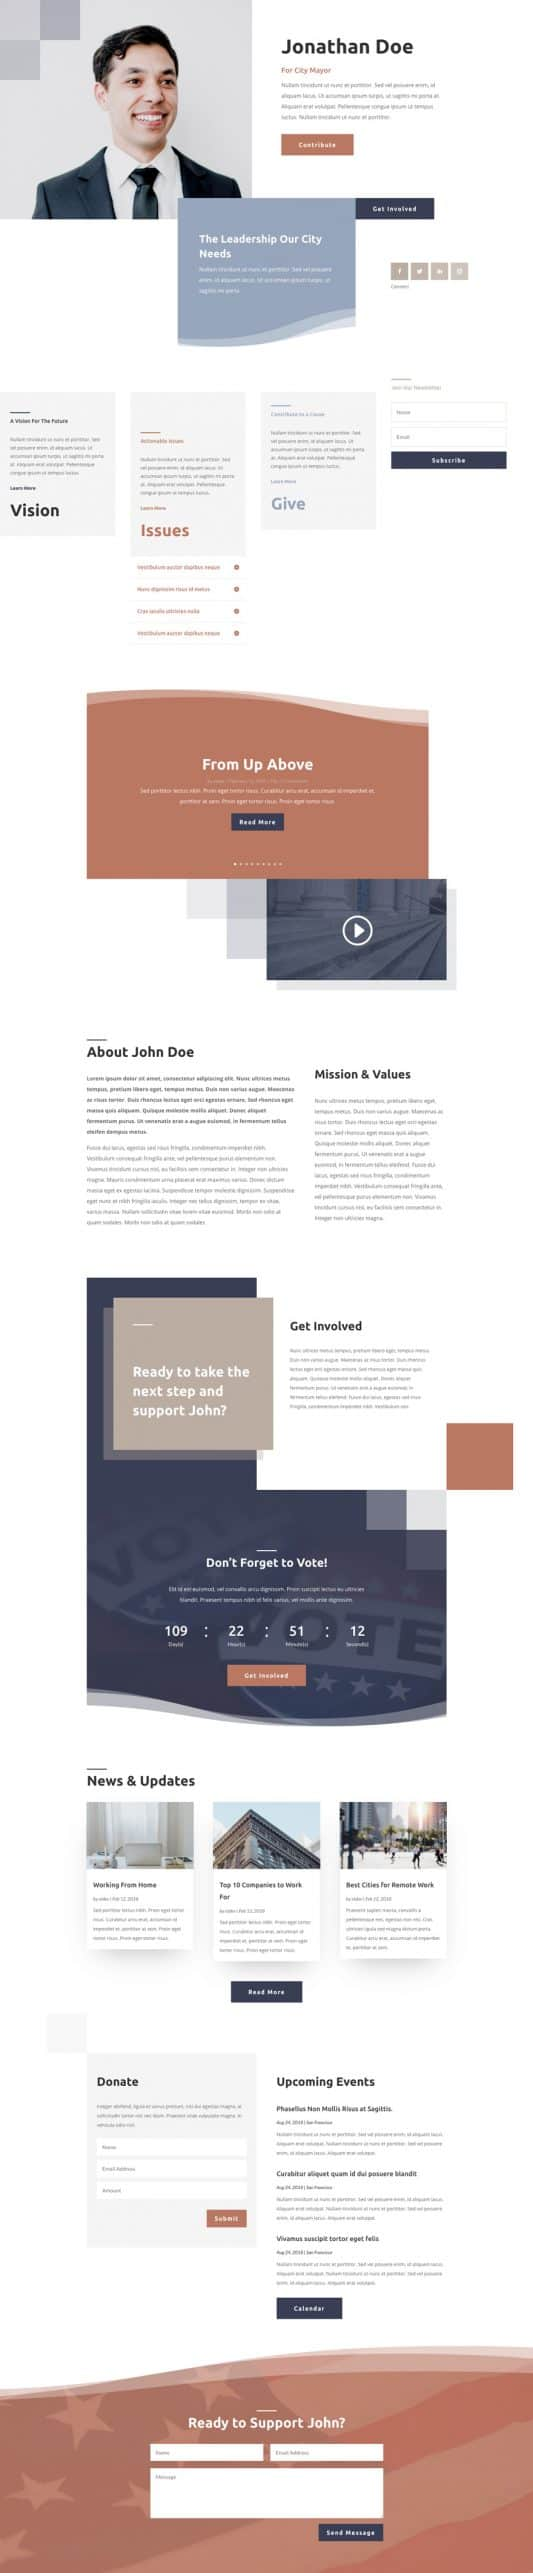 Political Candidate Web Design 6